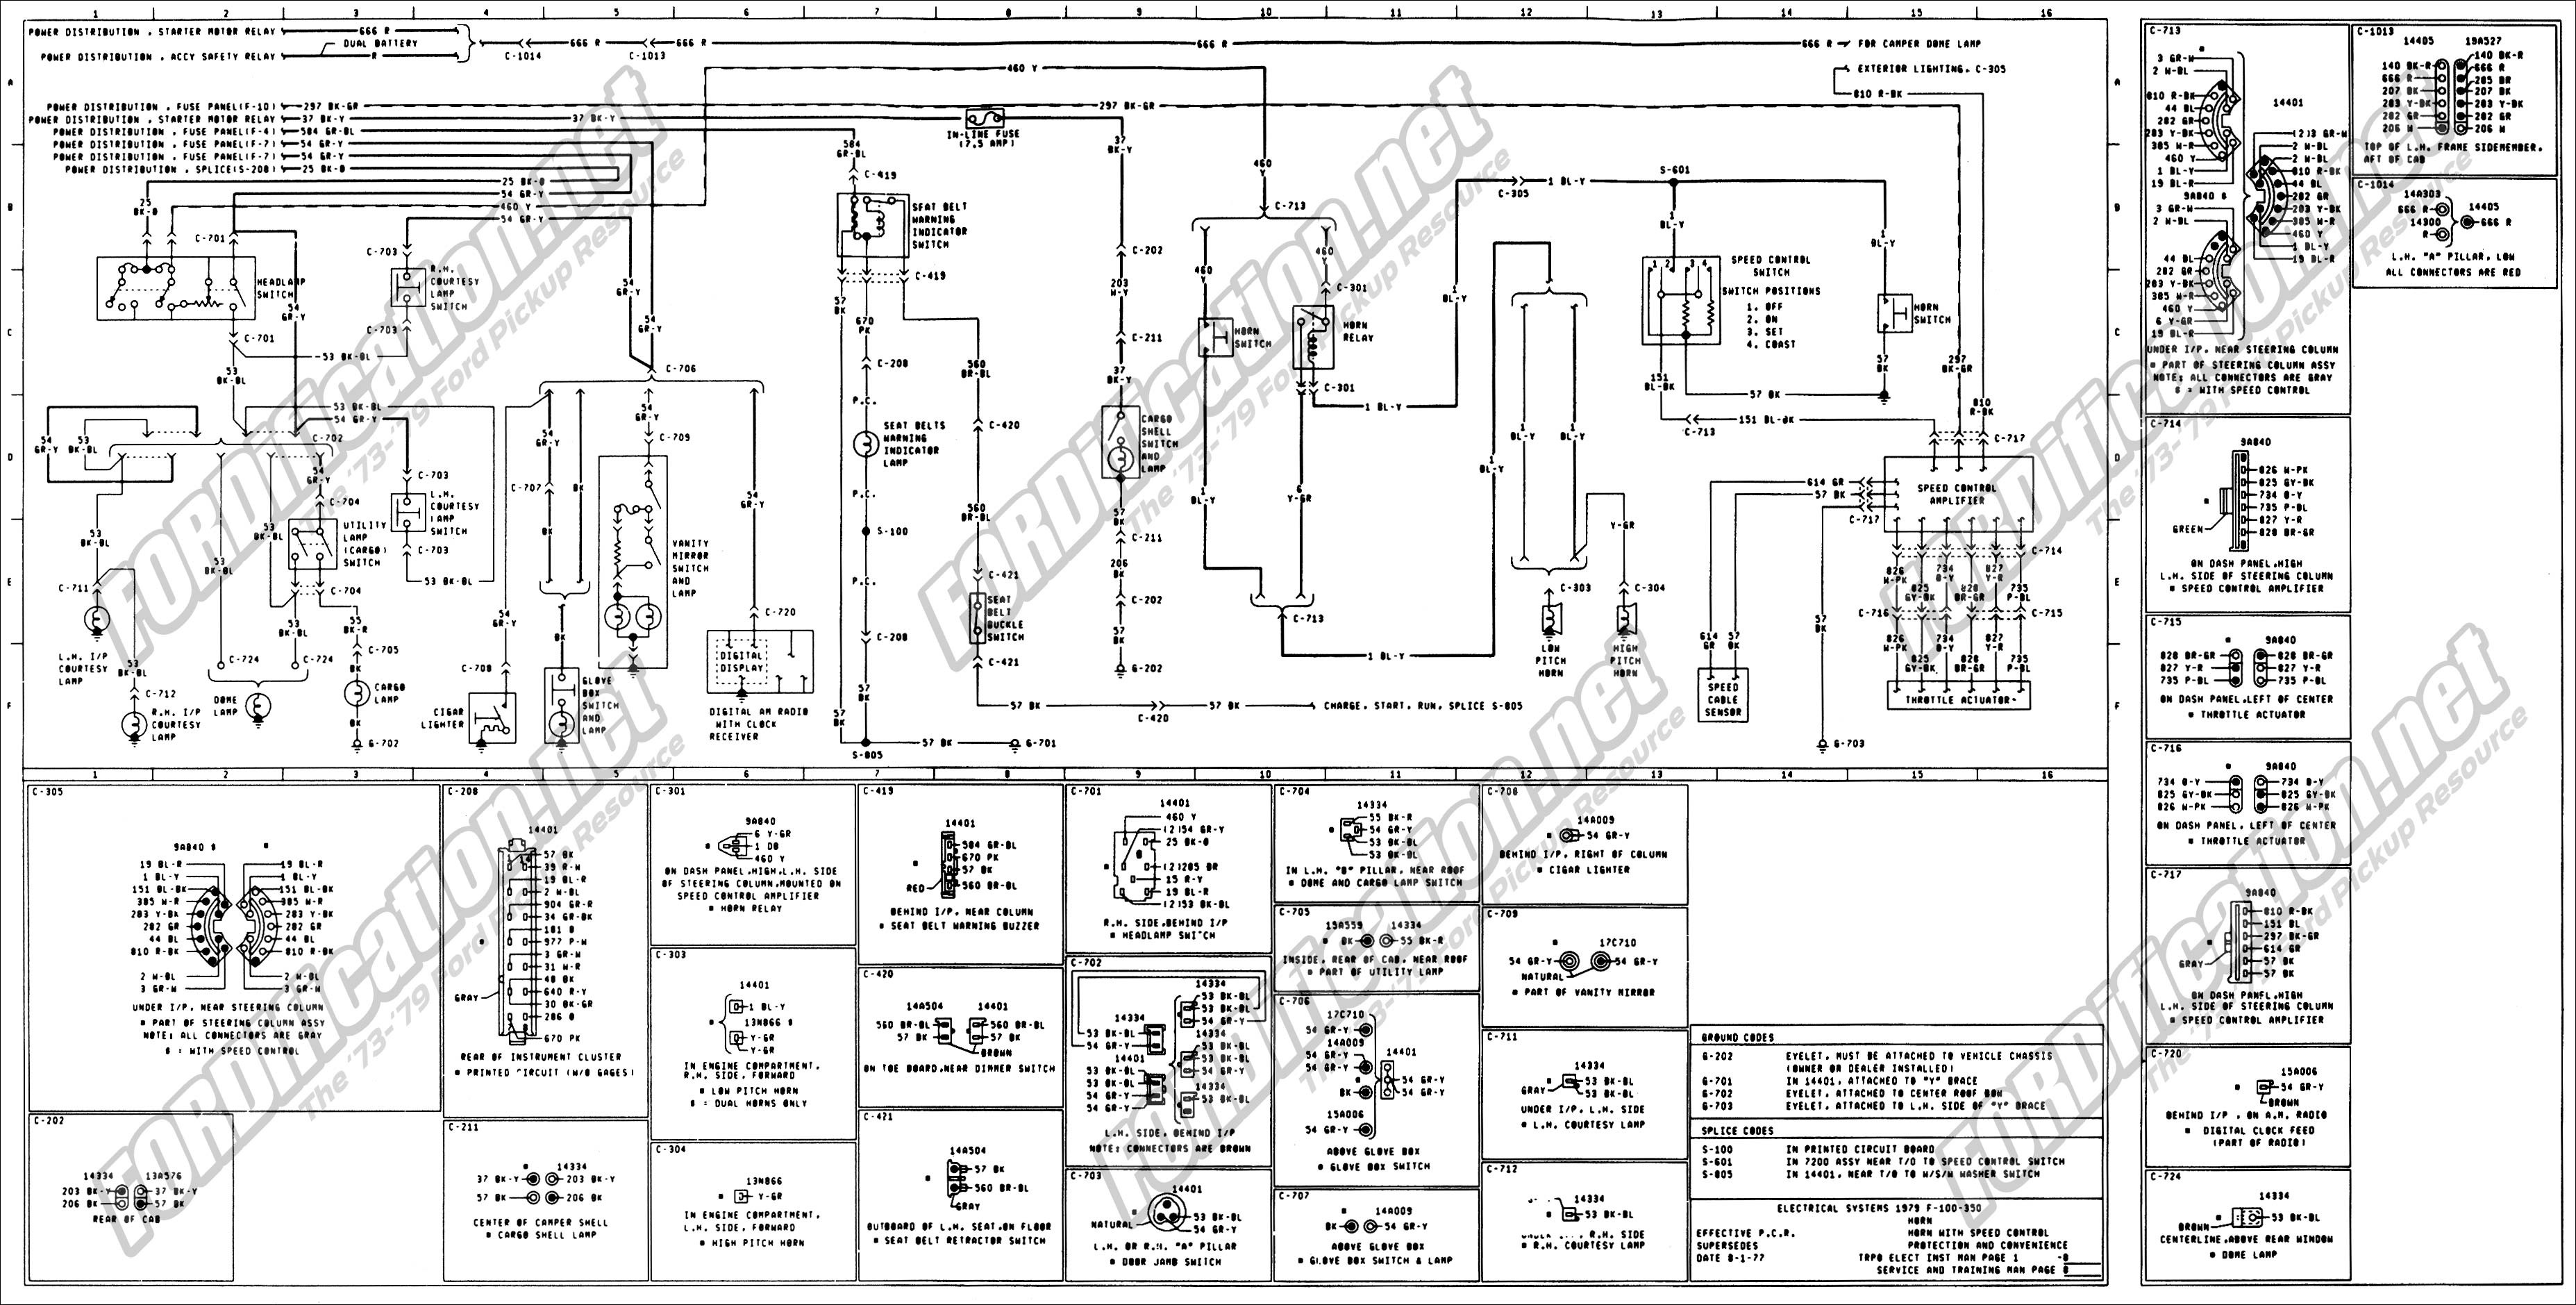 2010 ford f150 wiring diagram 1993 ford f 350 sel alternator wiring rh  detoxicrecenze com Ford Alternator Diagram Ford 3G Alternator Wiring Diagram